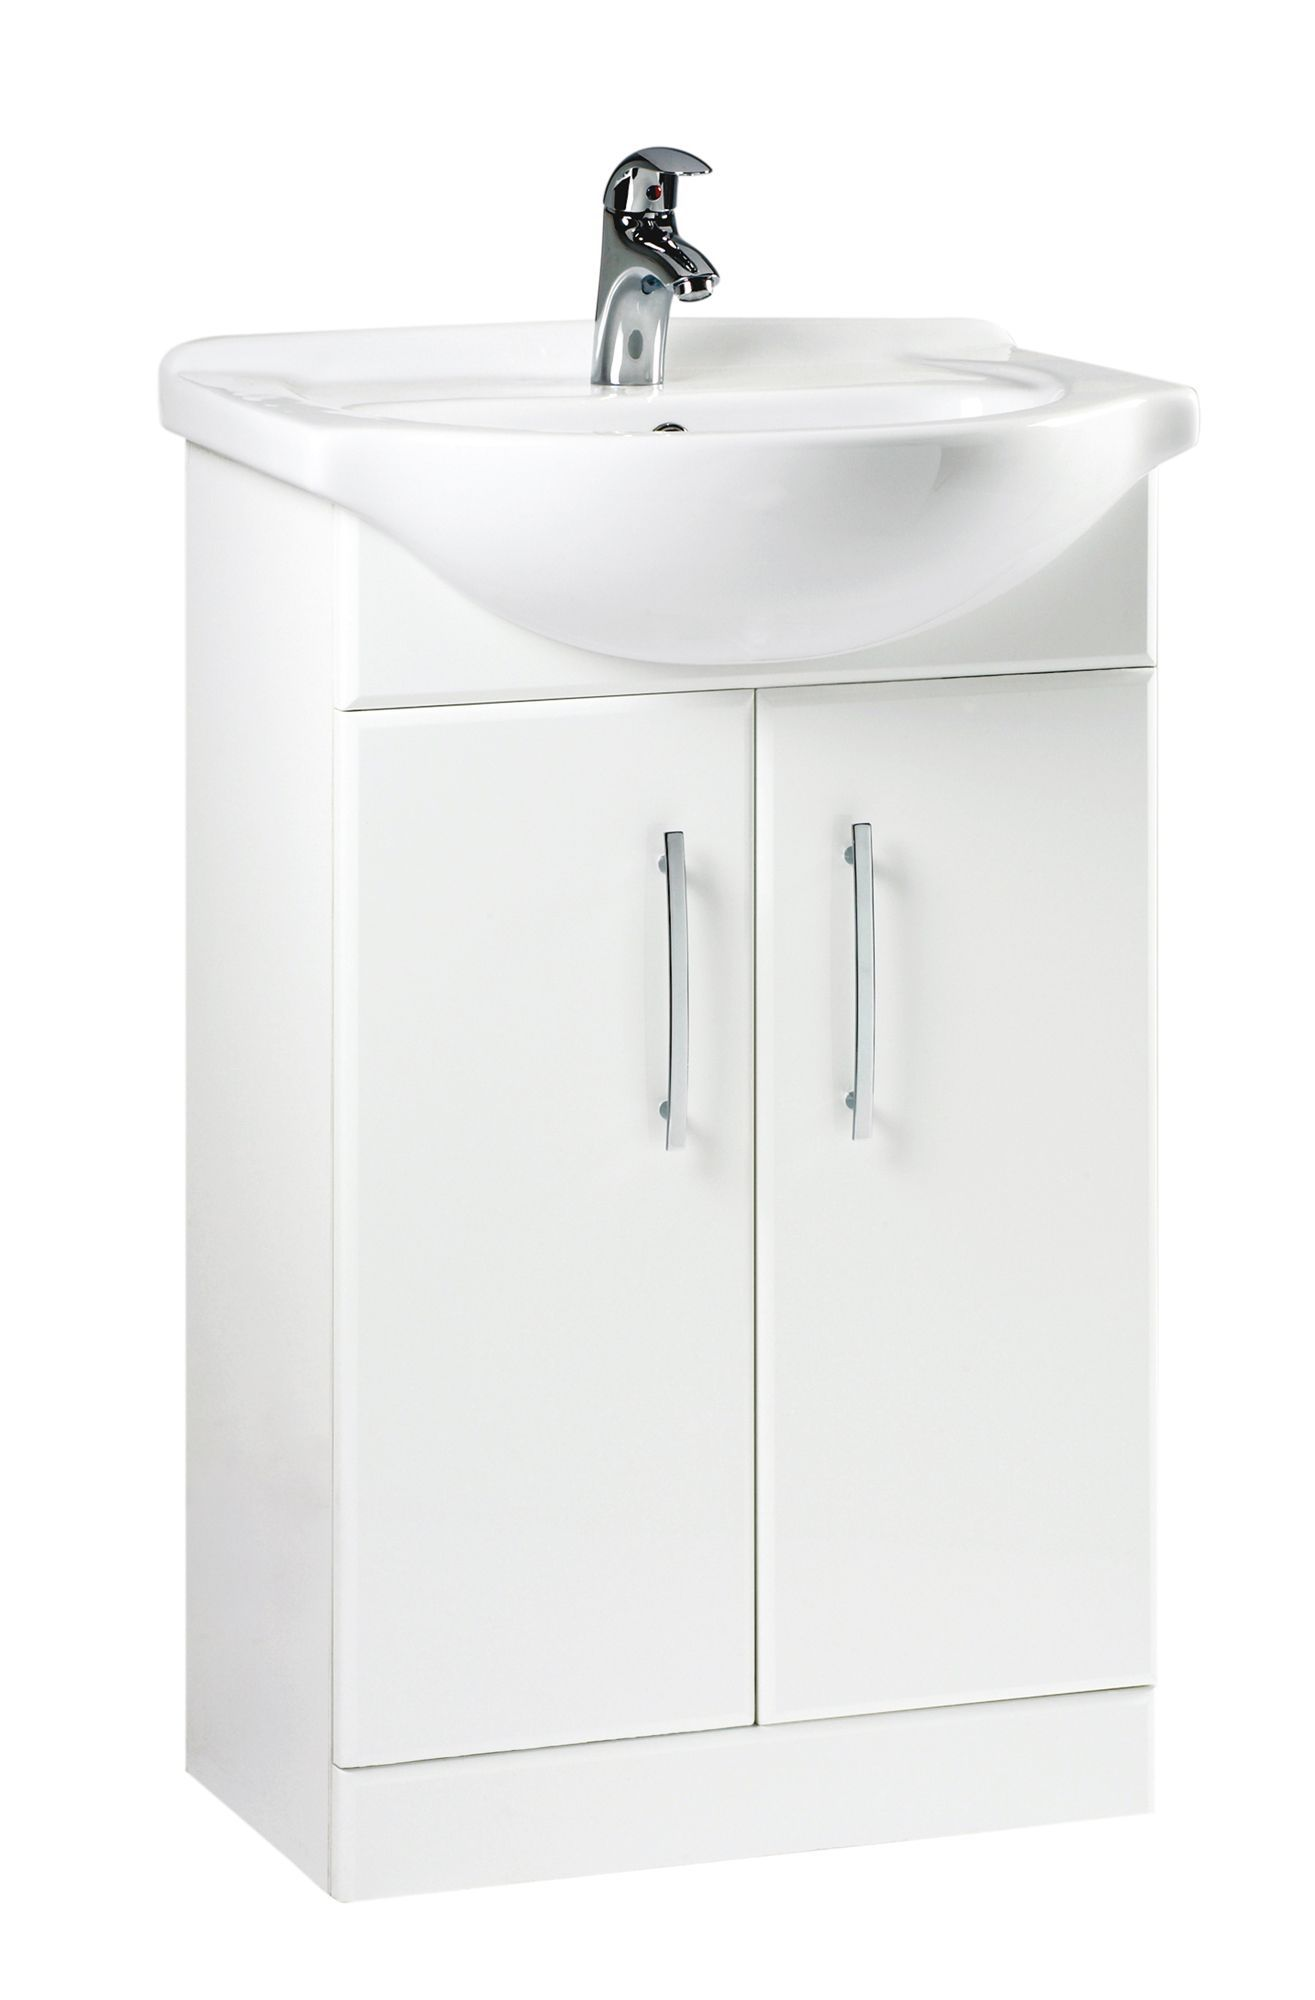 Bathroom Sinks B&Q b&q white vanity unit & basin | departments | diy at b&q